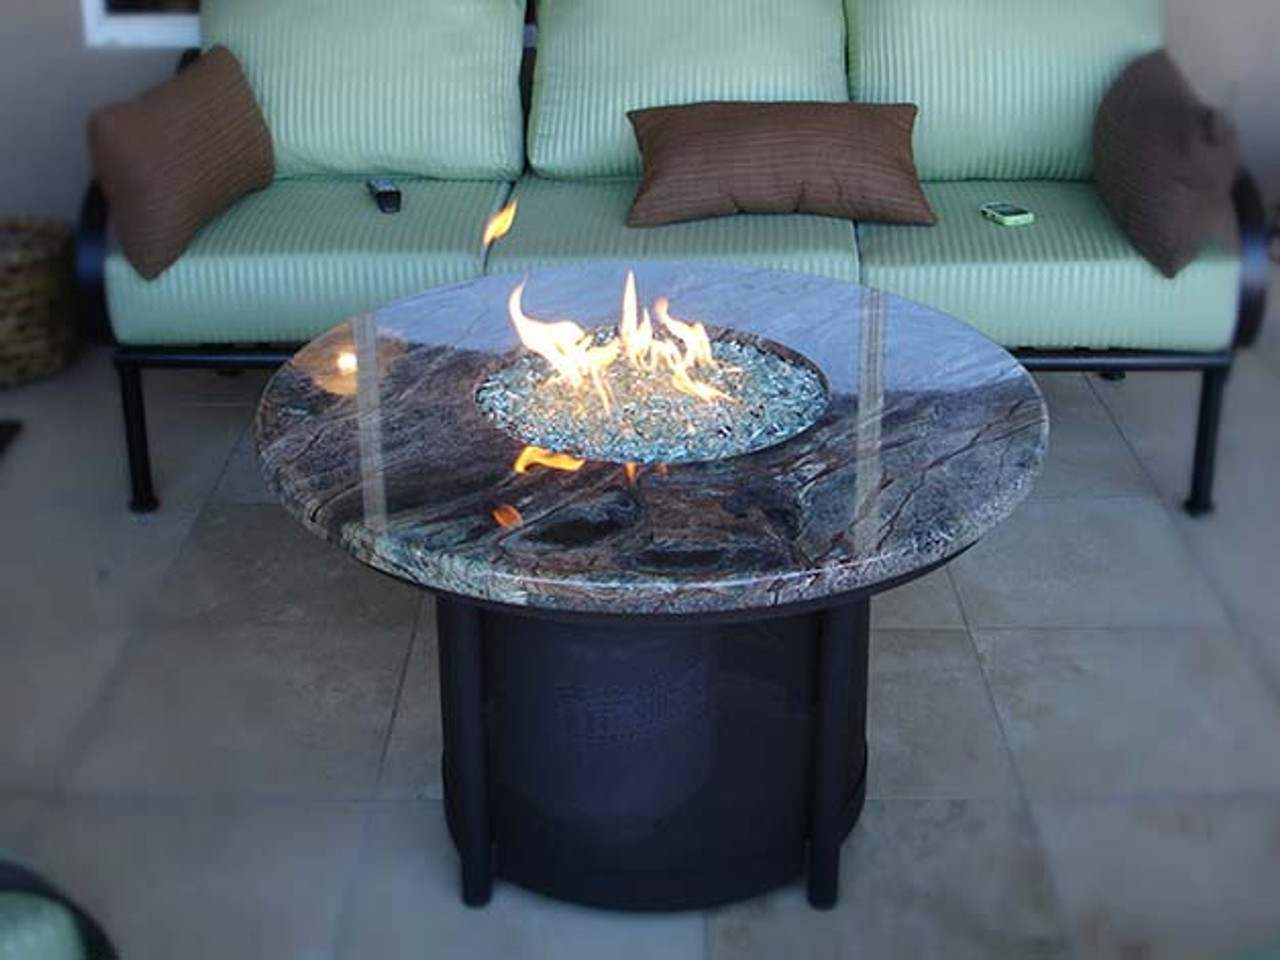 Round Fire Pit Table - Black propane fire pit table